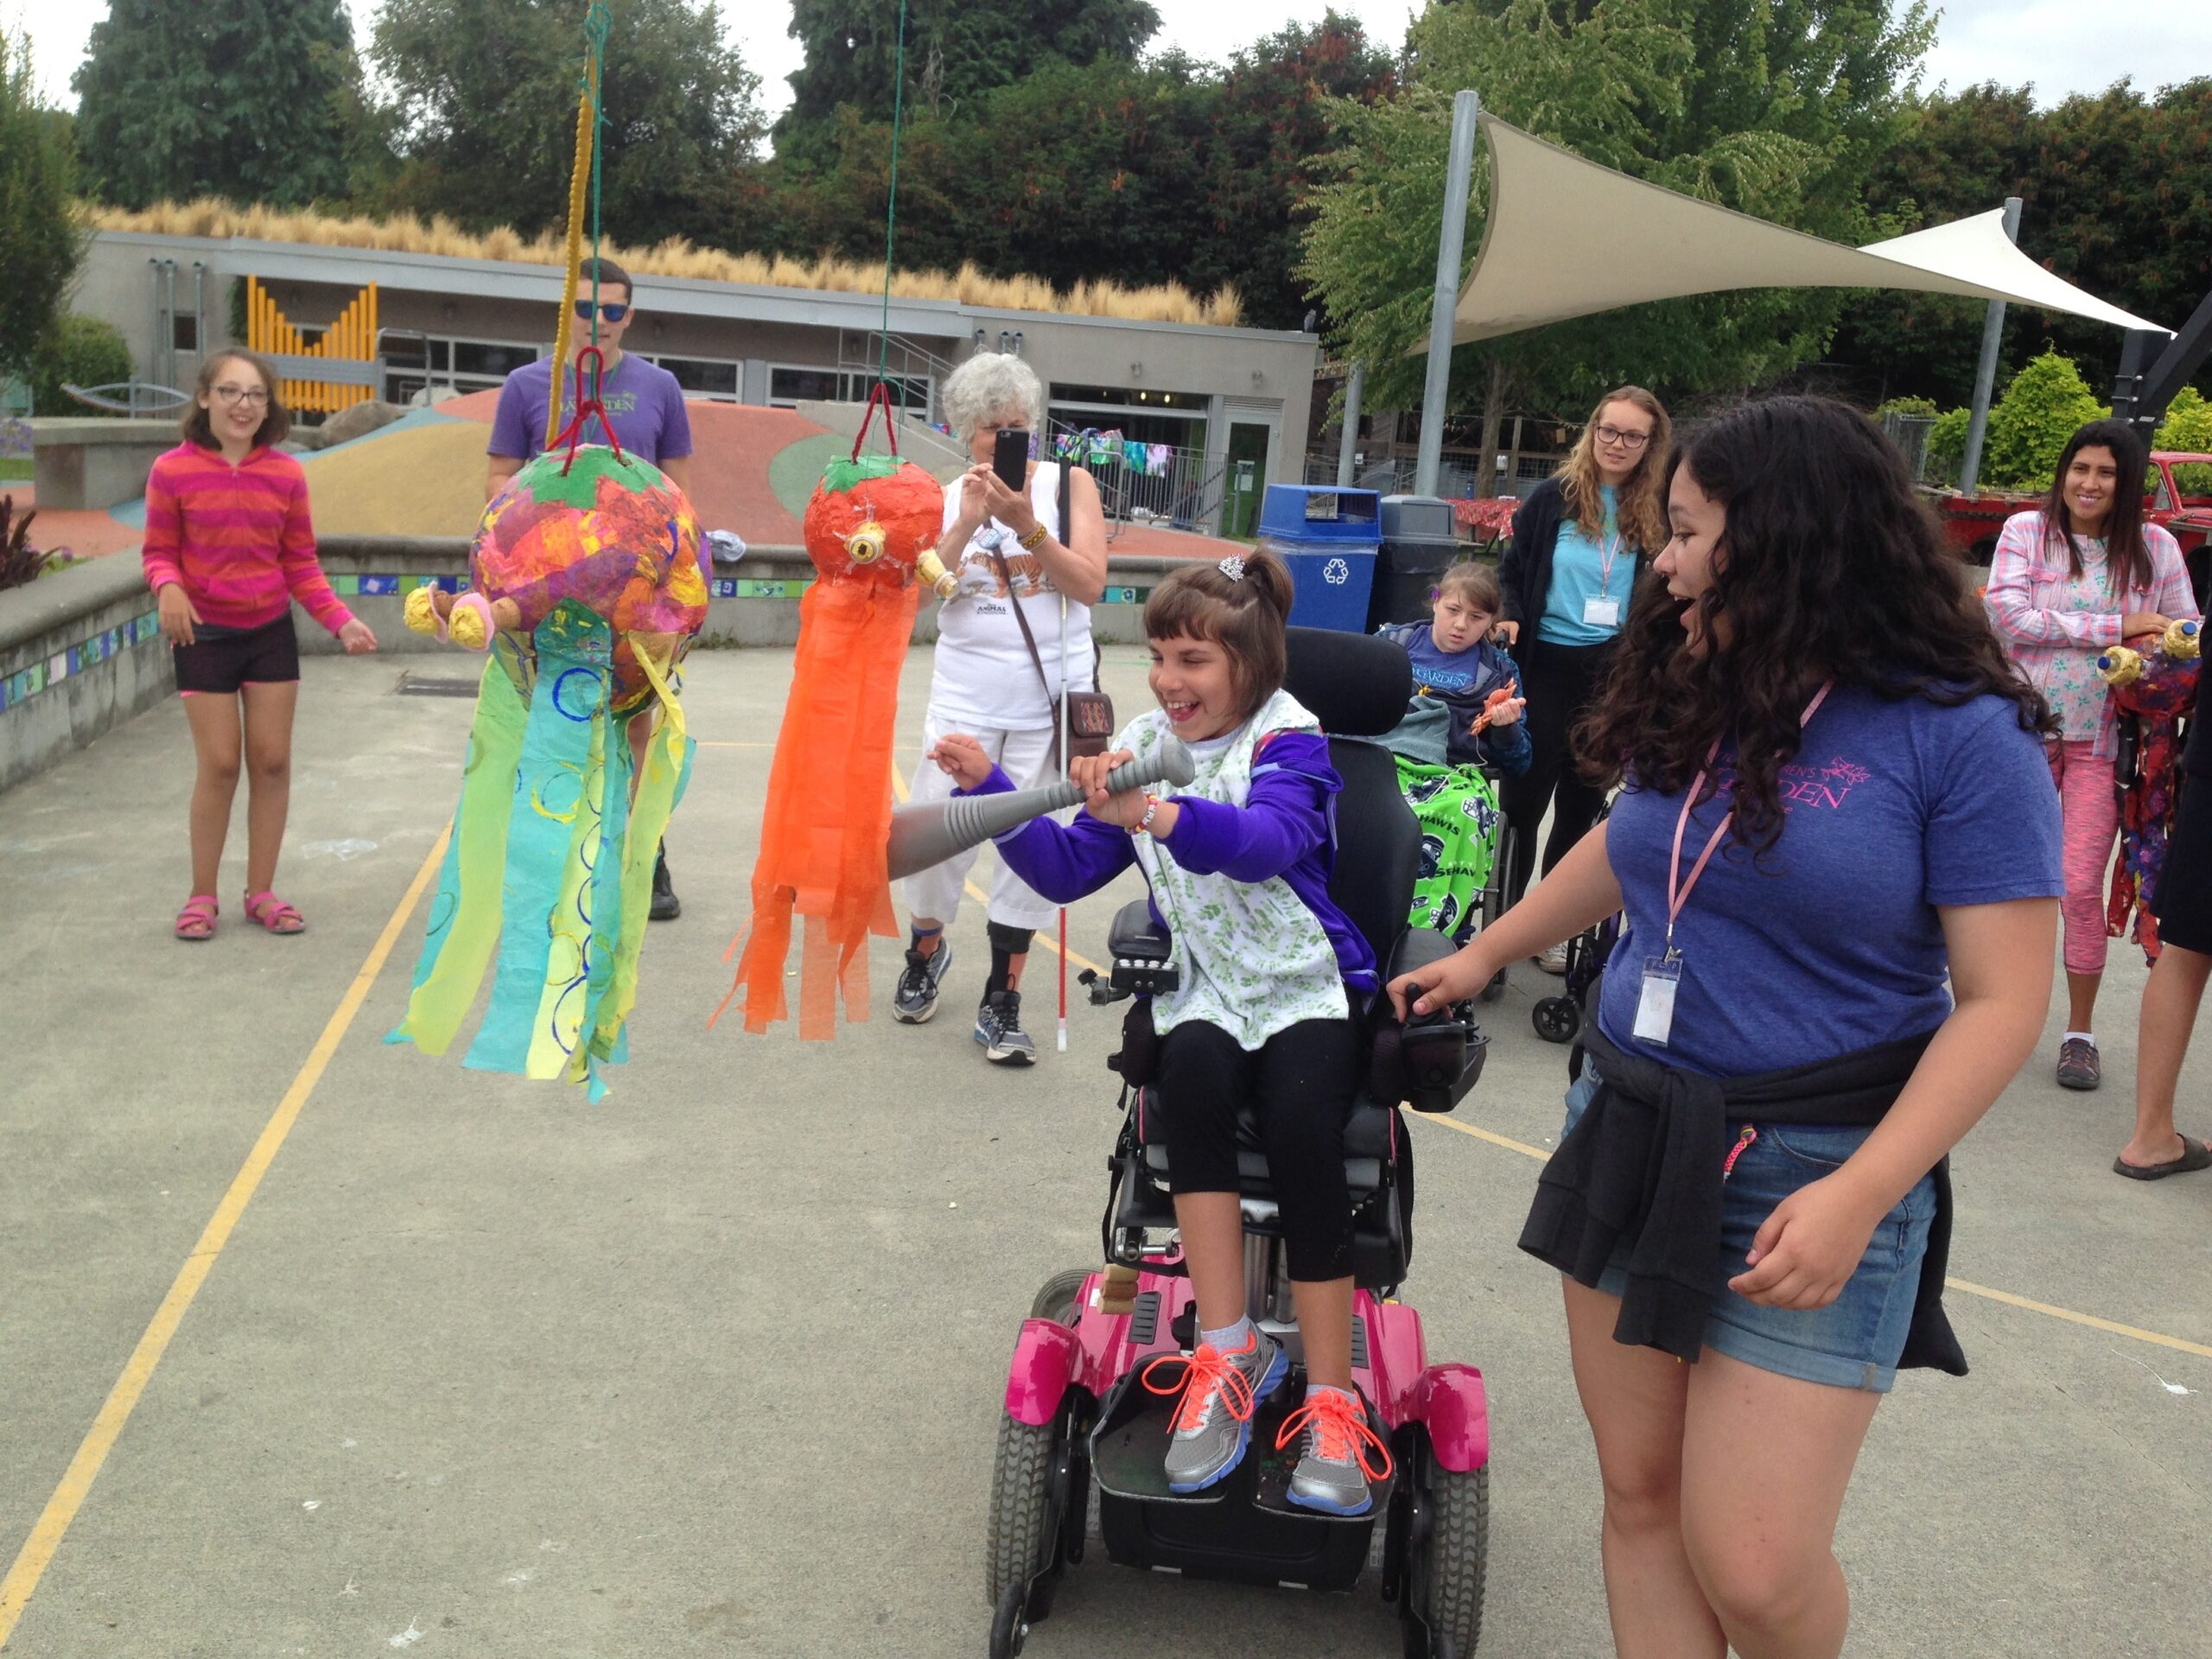 A teen sitting in her power wheelchair hits a pinata with the help of a camp counselor. The other teens cheer her on in the background.